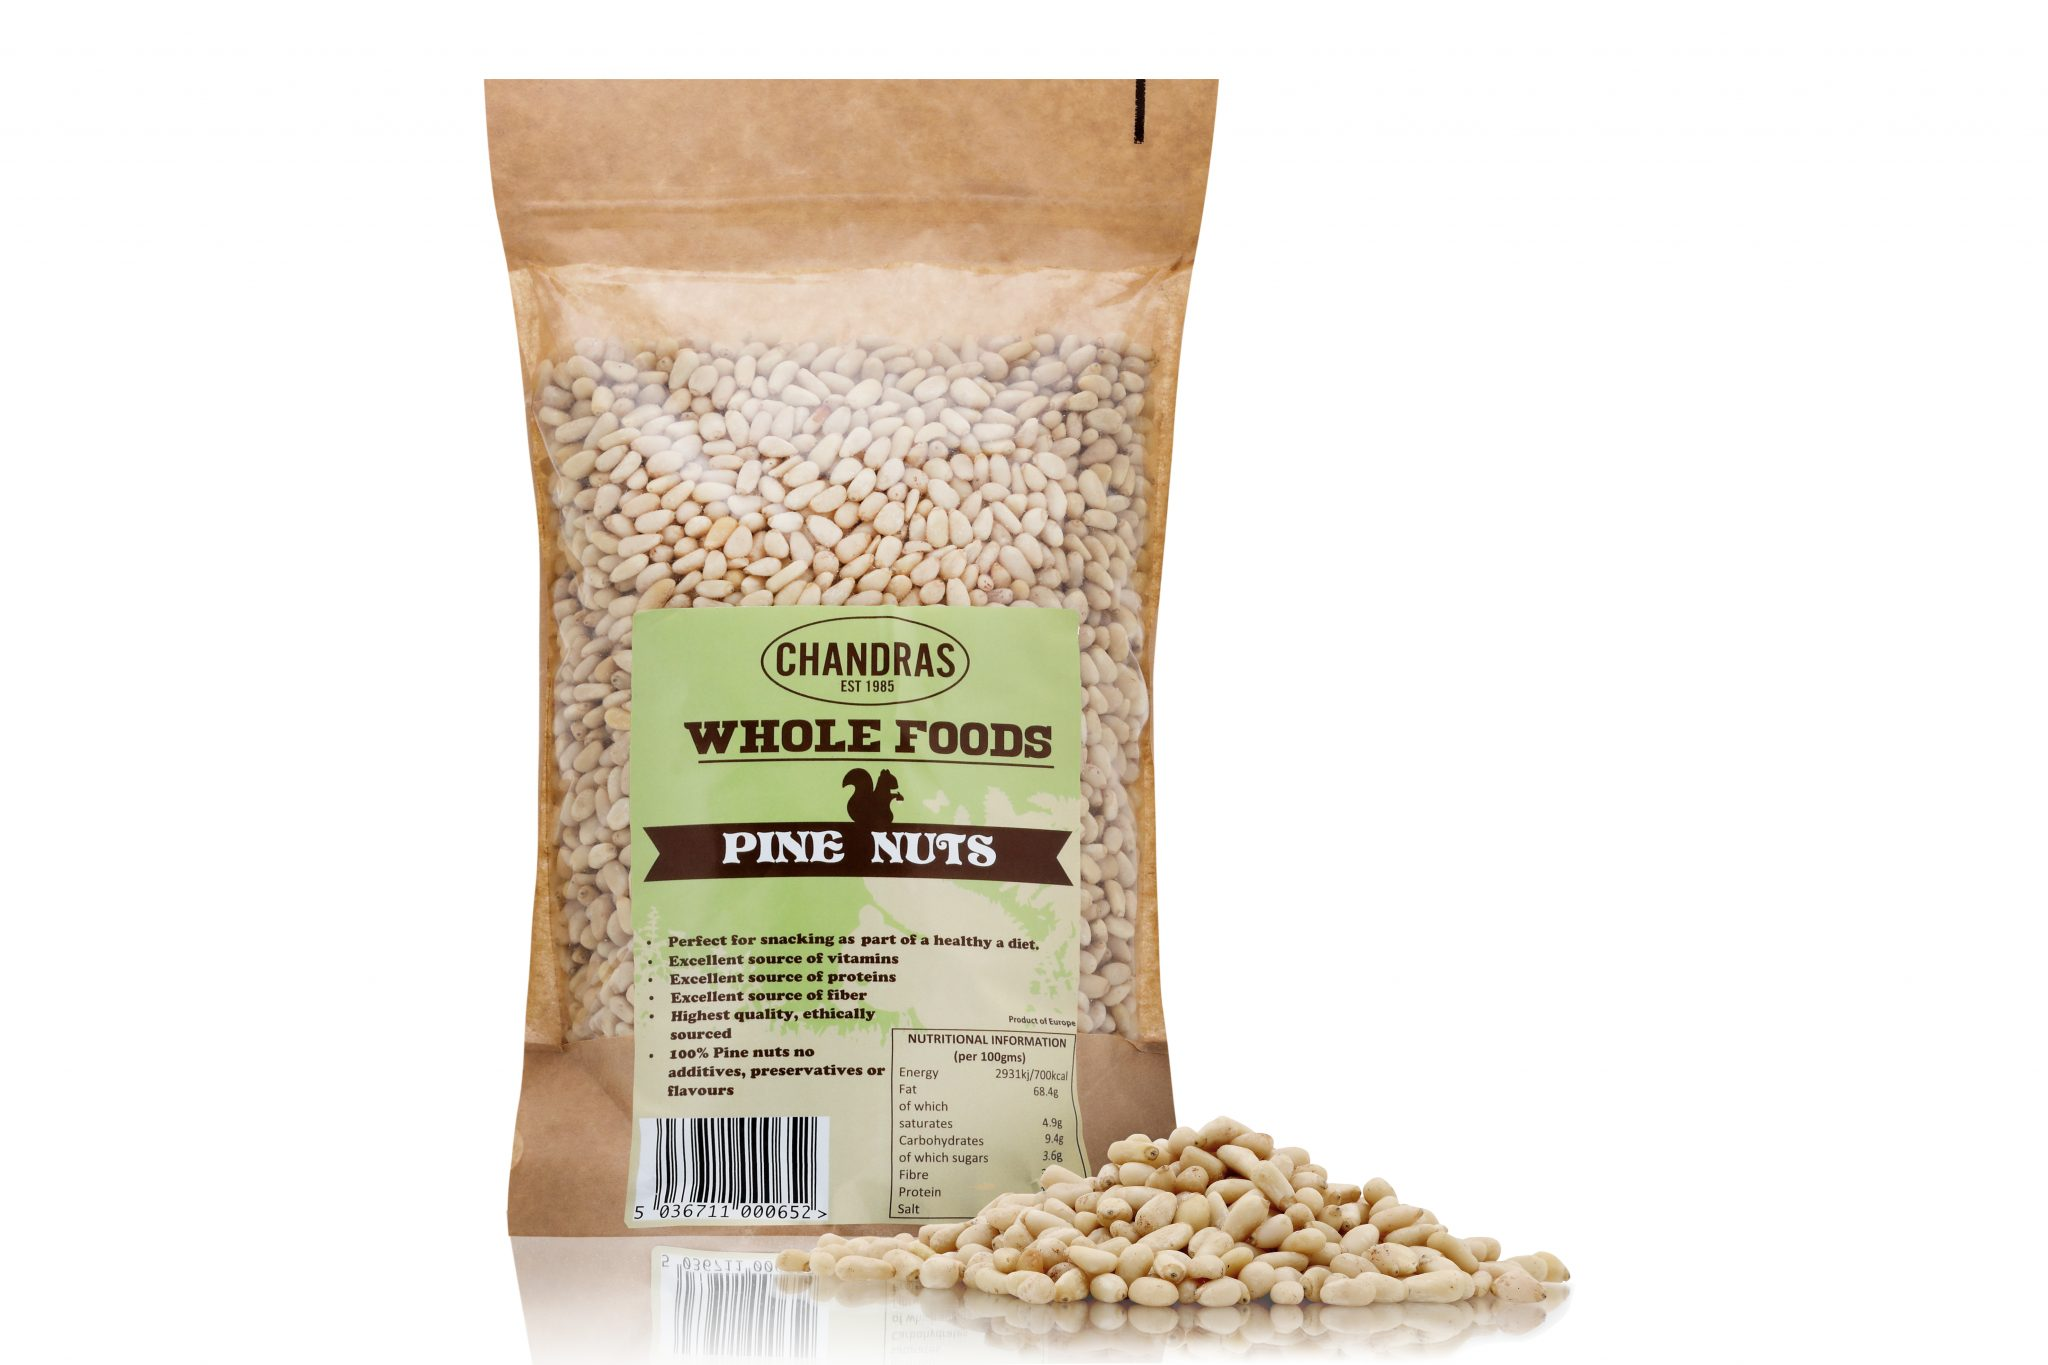 Chandras healthy vegan snack pine nuts in a packet